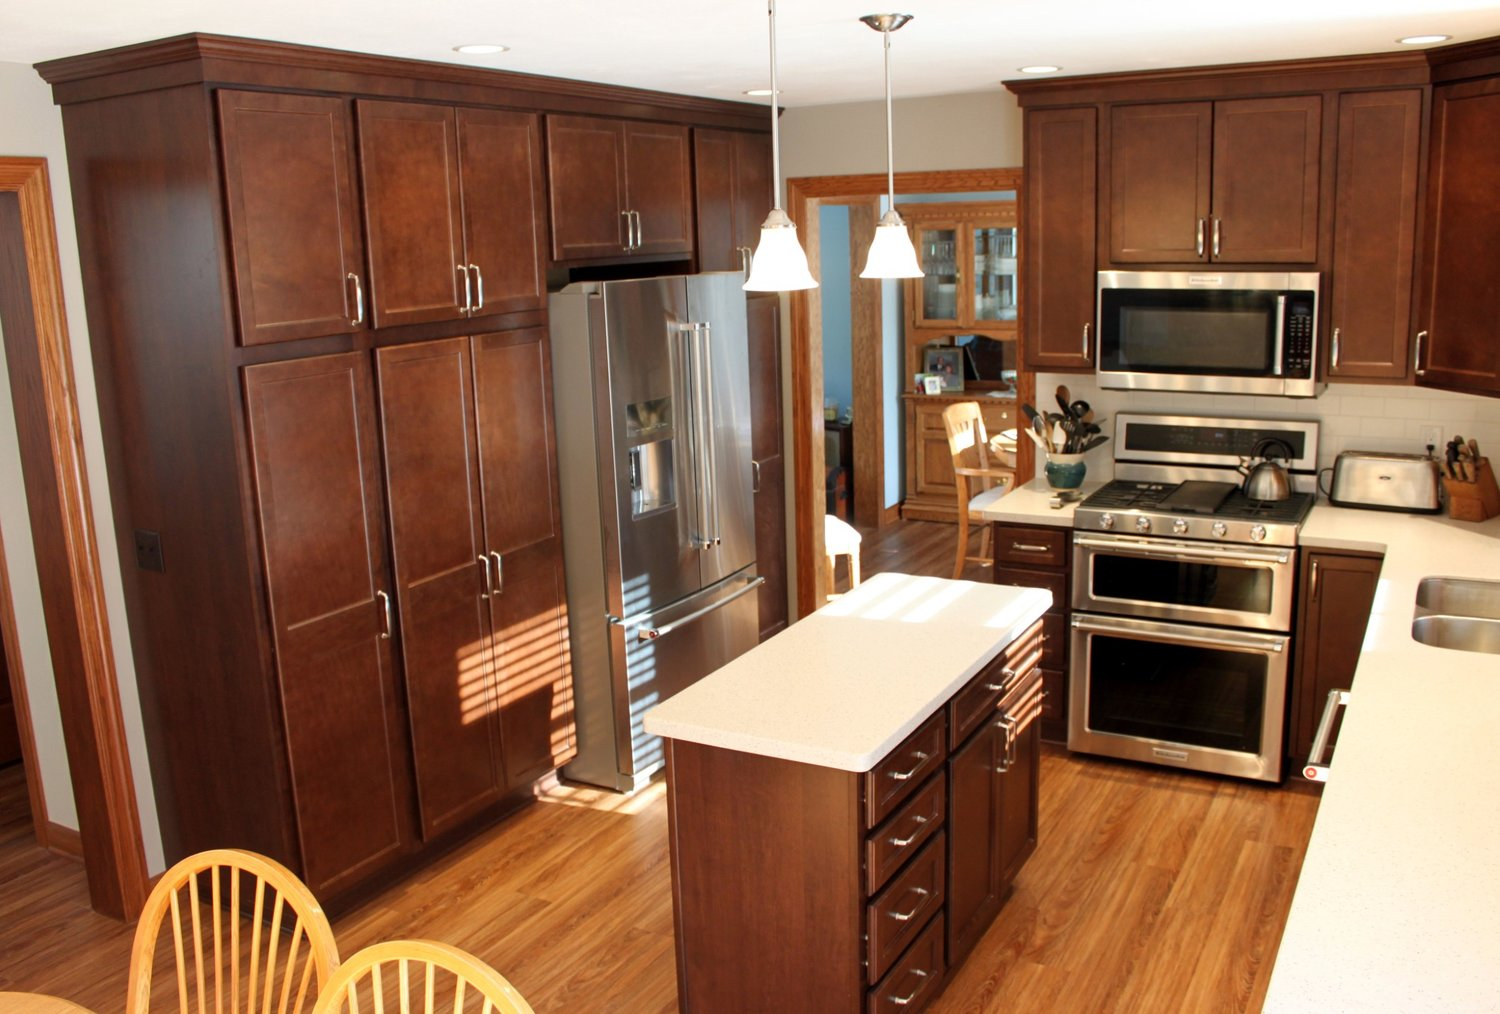 Kitchen Design What Size Kitchen Island Will Fit In My Kitchen Degnan Design Build Remodel